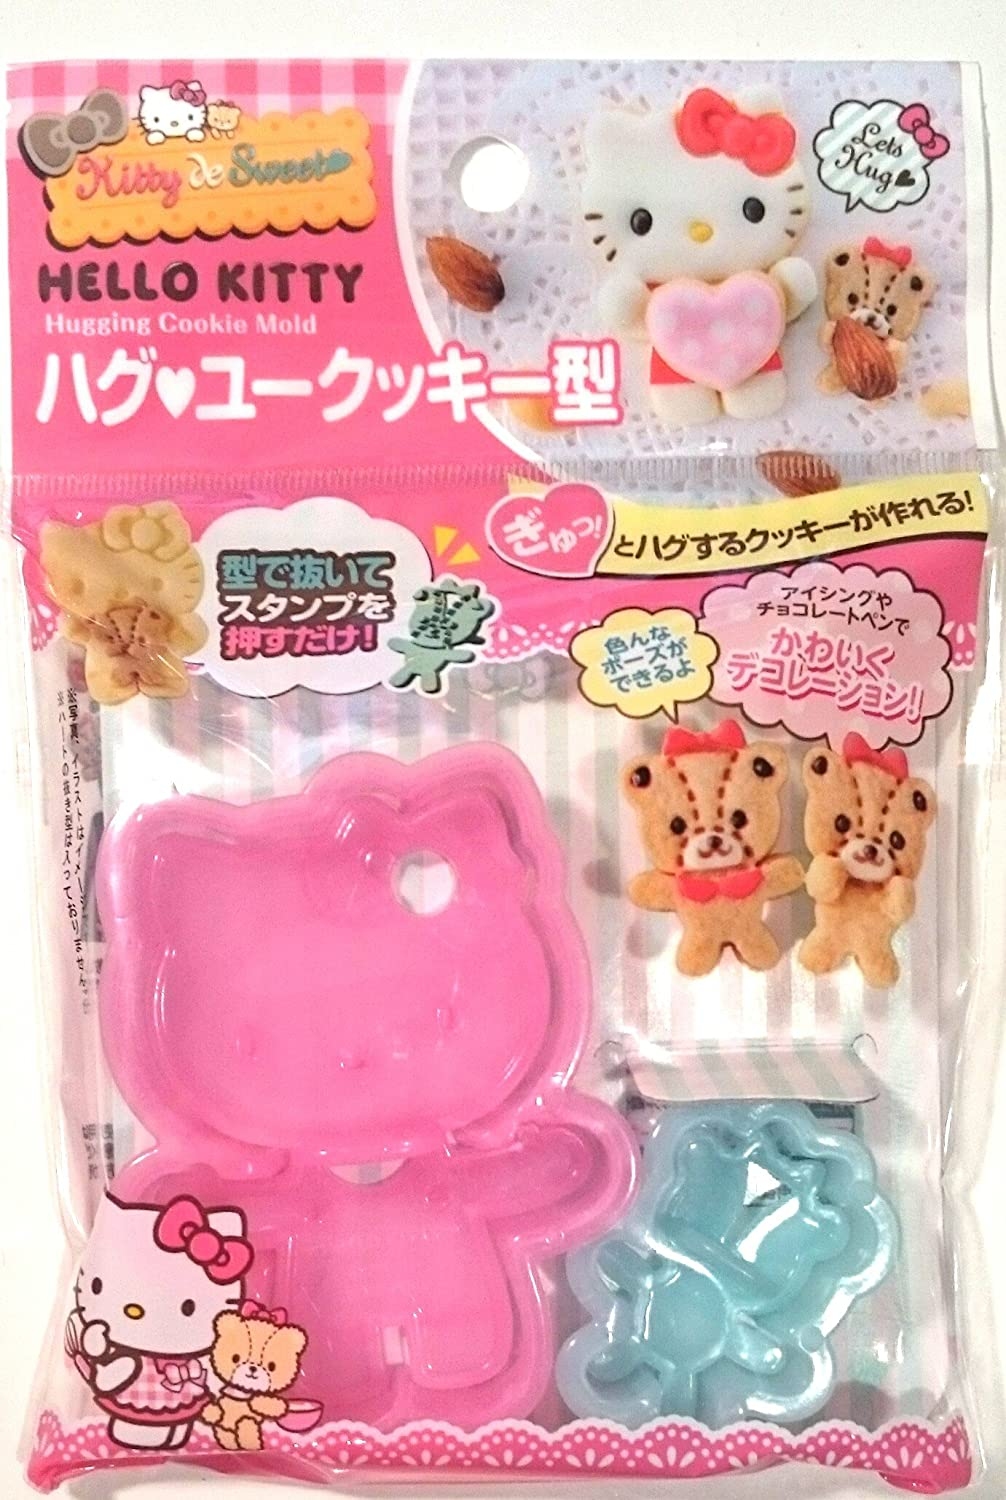 SANRIO Hello Kitty Hugging Cookie Mold Kitty & Tiny Cham Kitchen